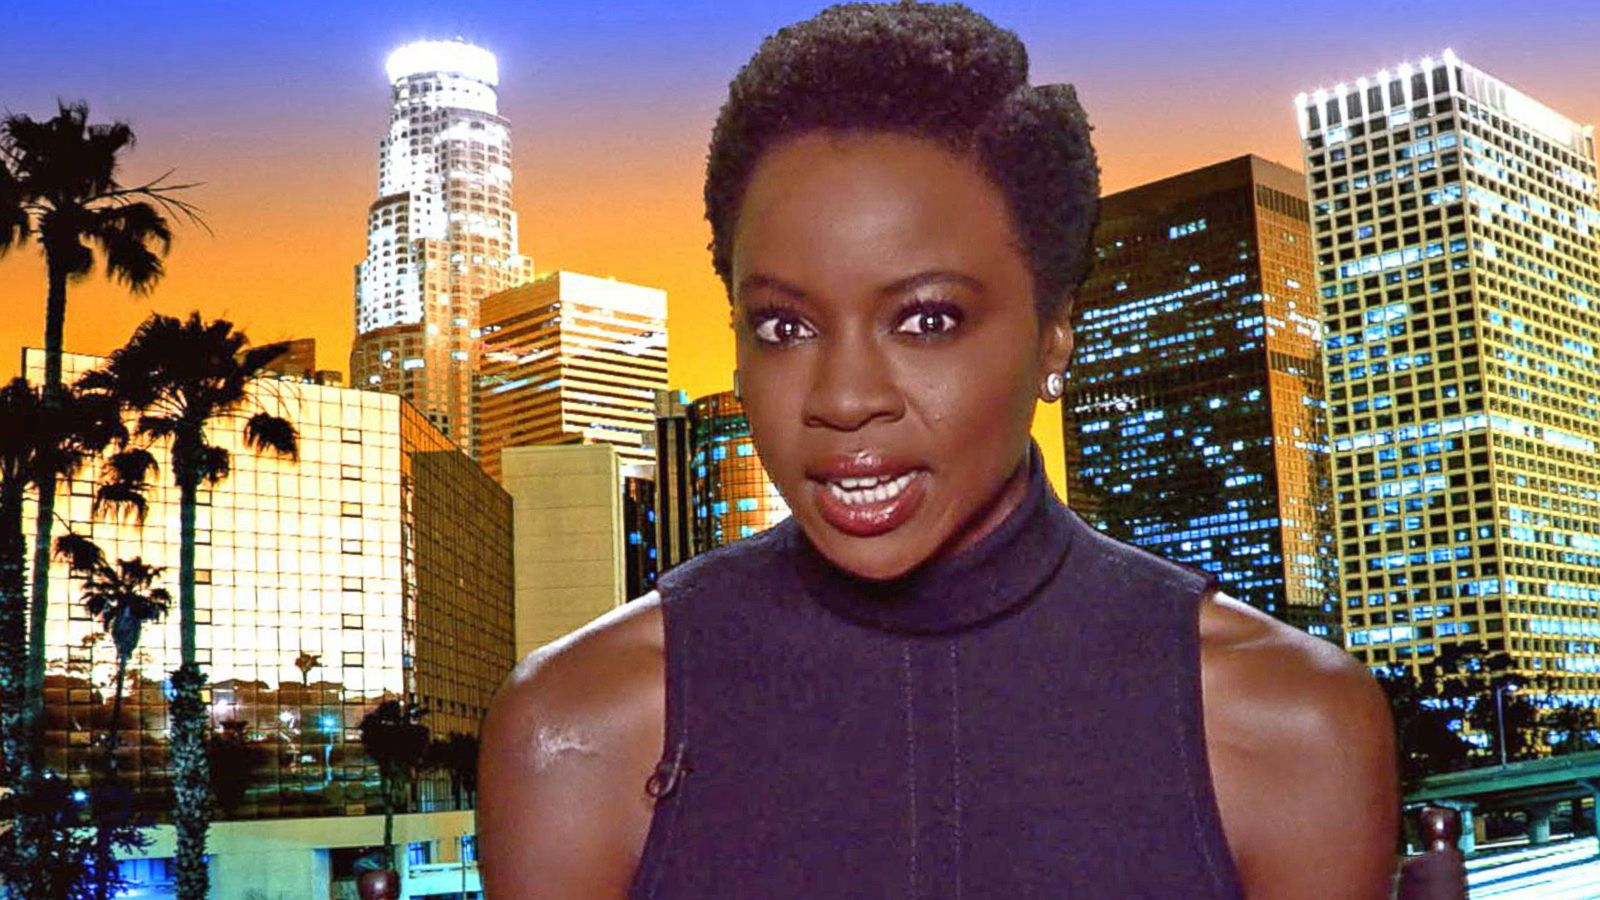 VIDEO: 'The Walking Dead': Danai Gurira Weighs in on Shocking Premiere